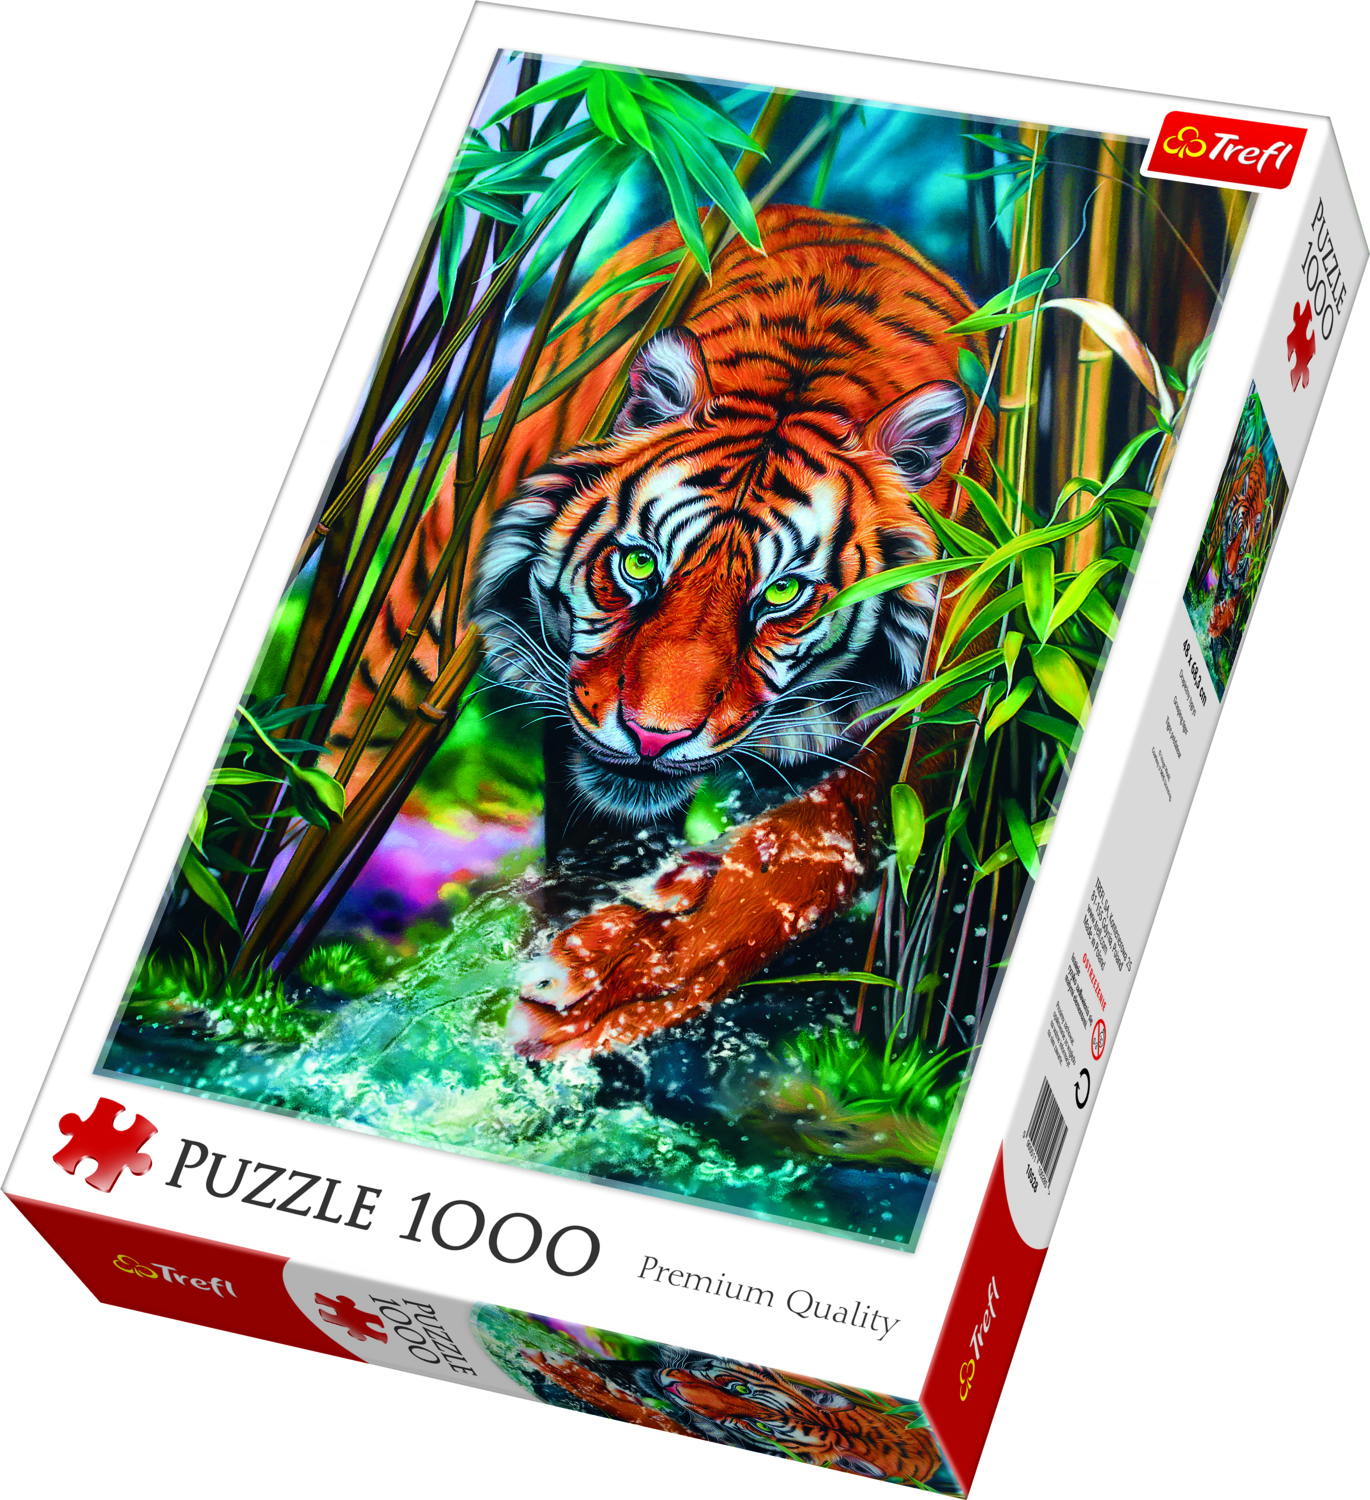 PUZZLE 1000 GRASPING TIGER